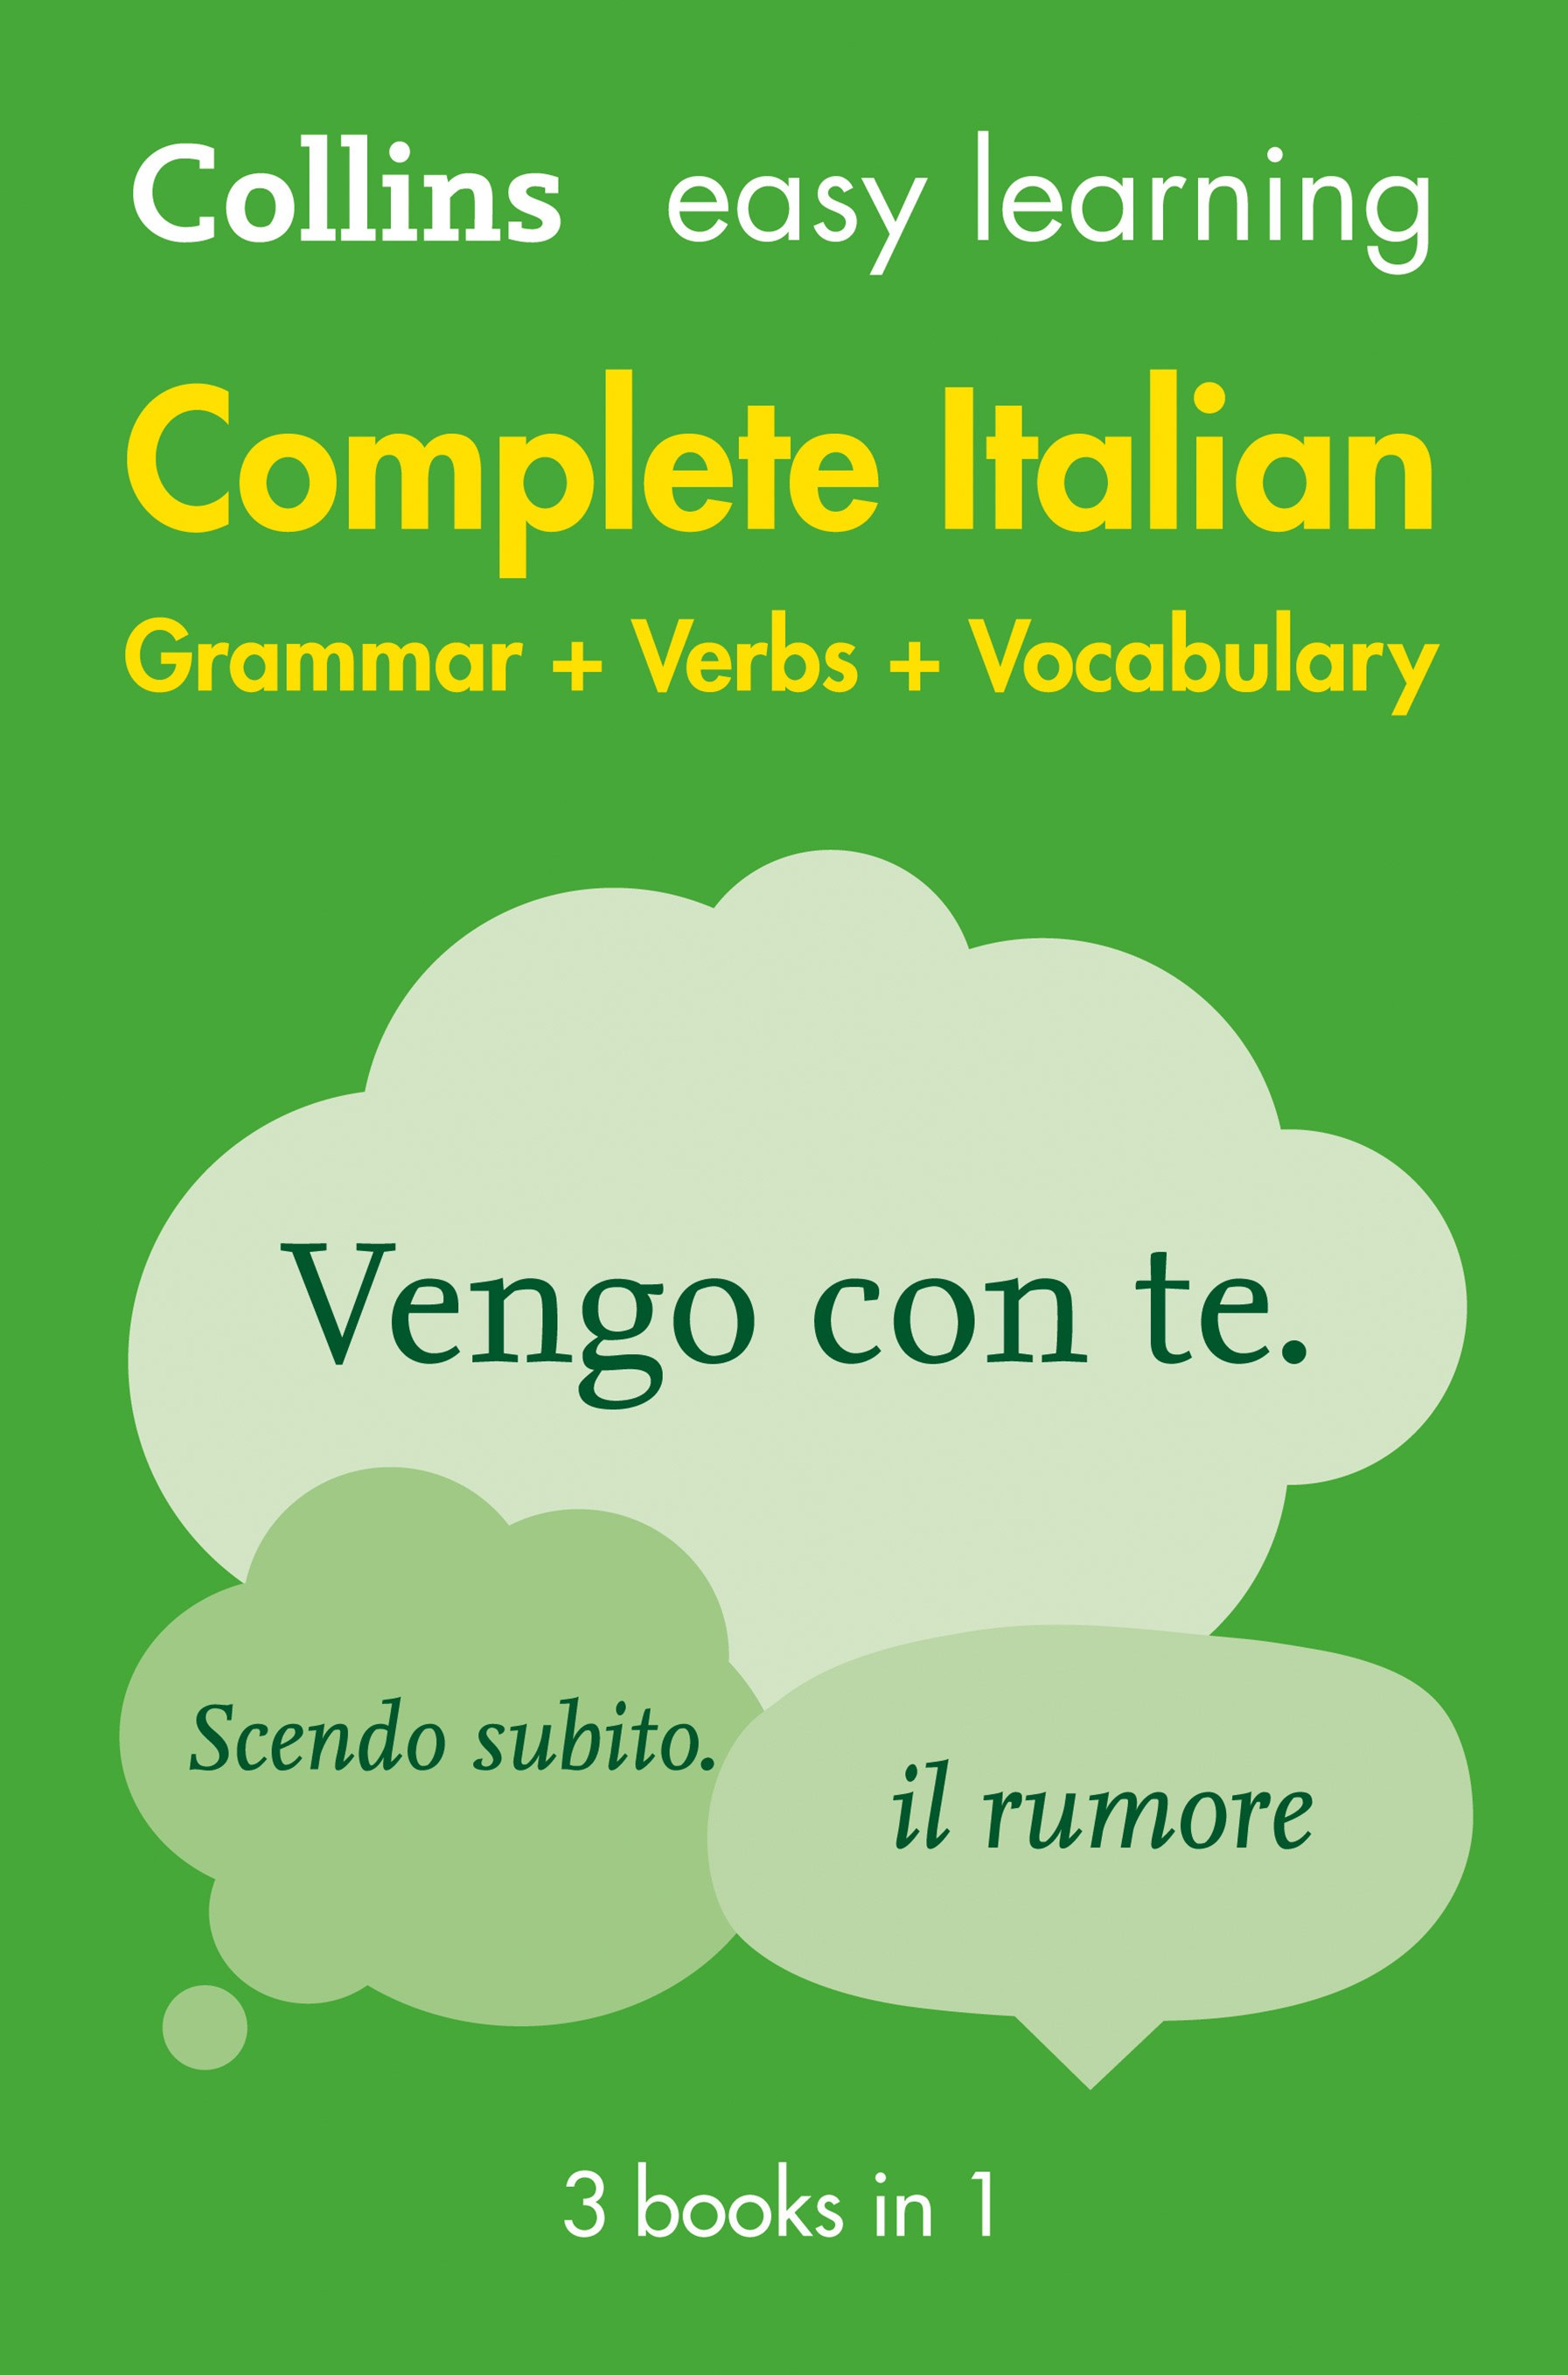 Collins Easy Learning Complete Italian Grammar, Verbs and Vocabulary (3 Books In 1) [2nd Edition]